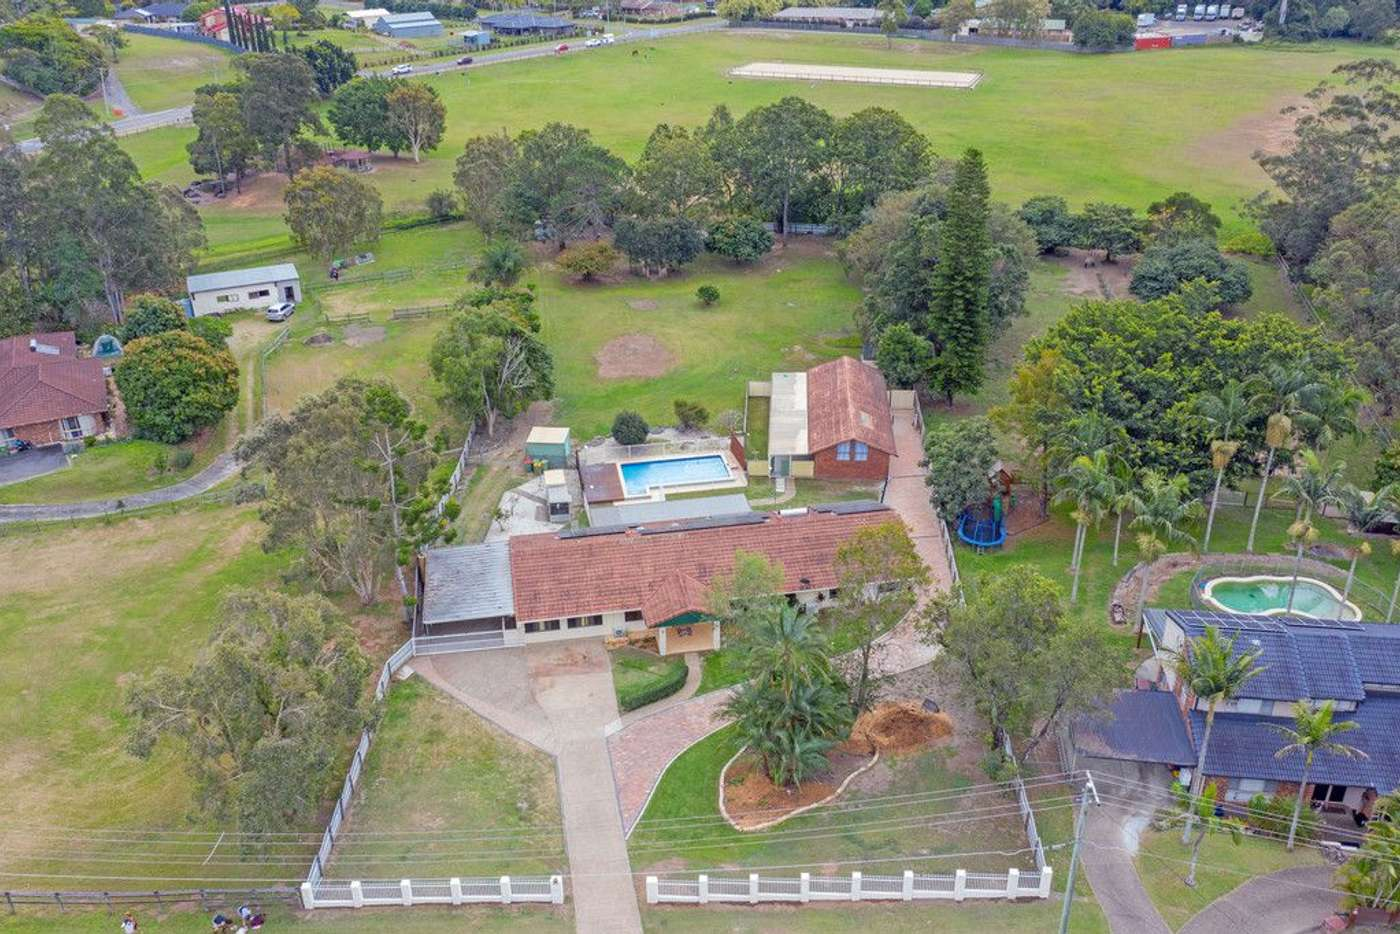 Main view of Homely house listing, 4 Tom Latimer Court, Worongary QLD 4213